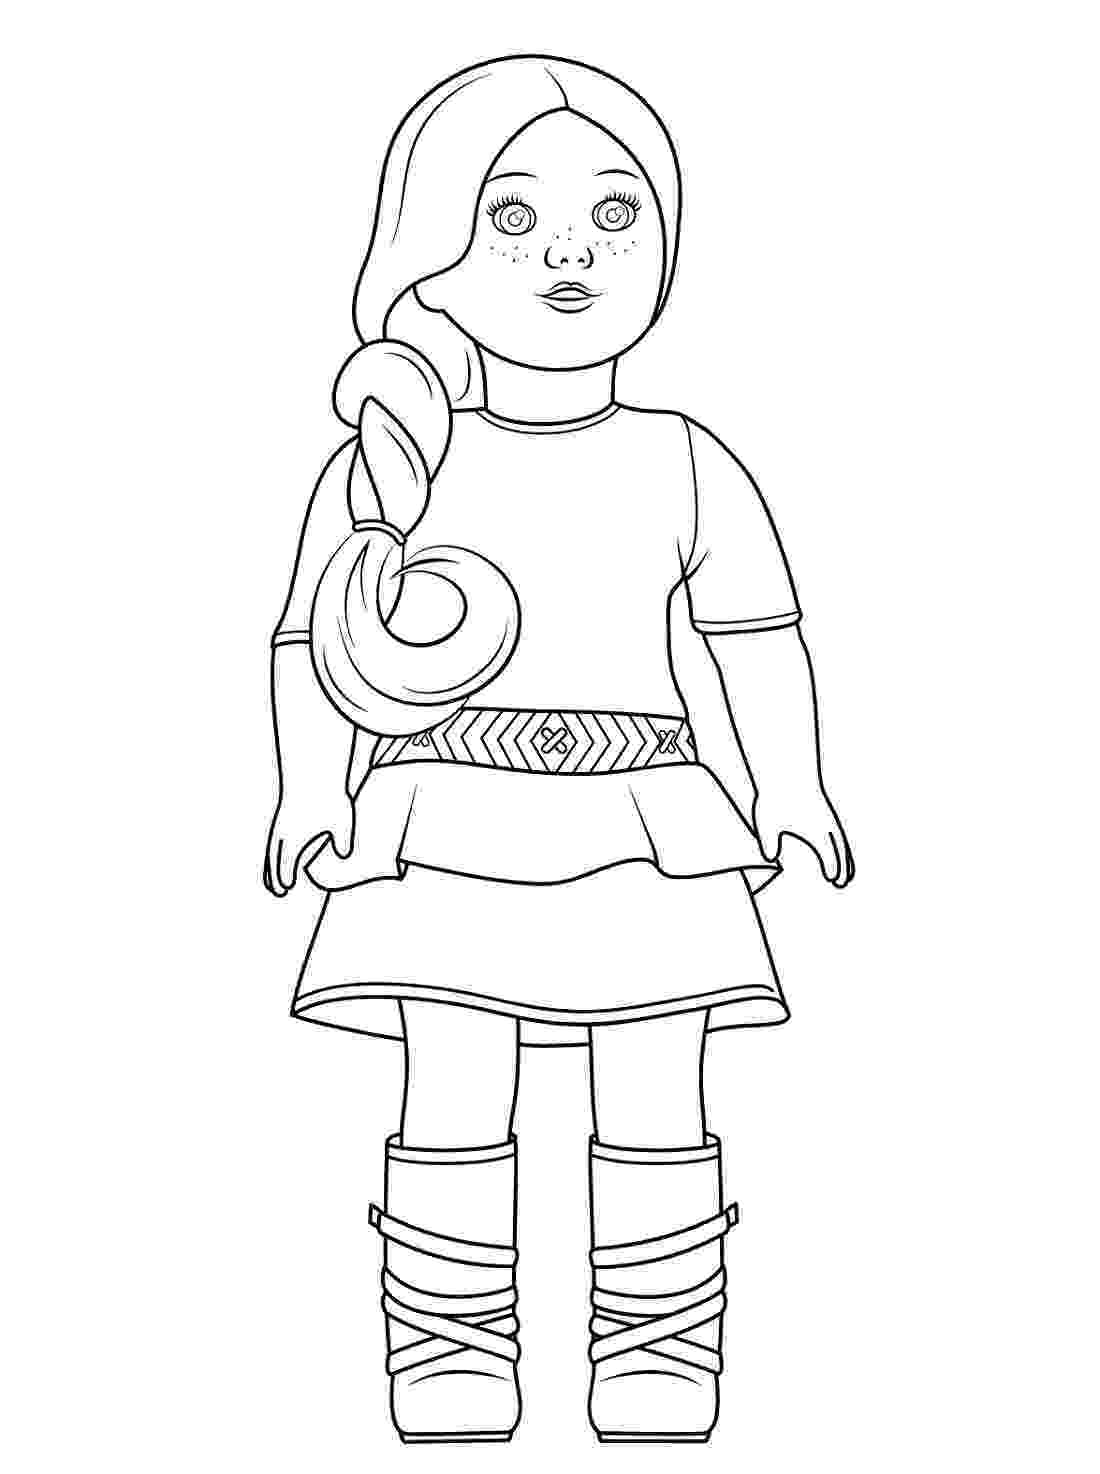 free printable american girl doll coloring pages american girl boy coloring page coloring pages free doll girl american printable